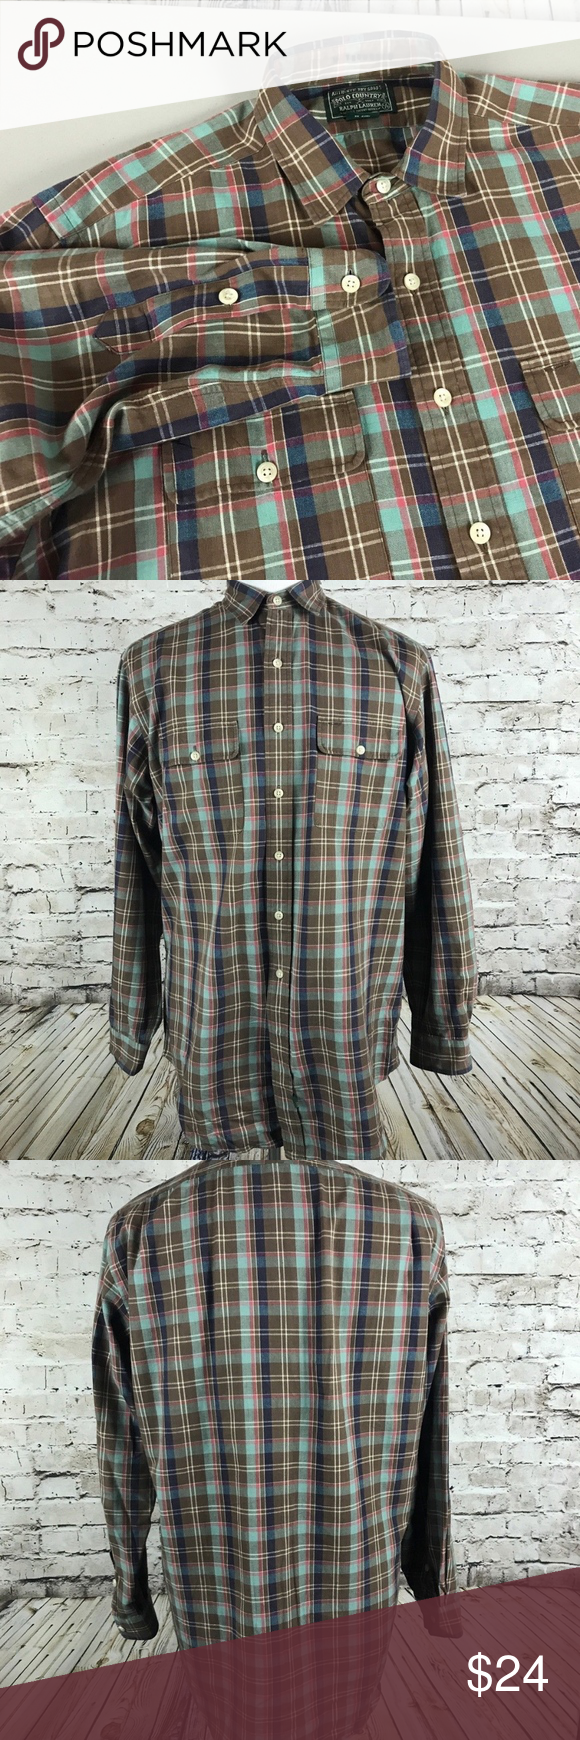 Flannel shirt with suit  VTG Polo Ralph Lauren Flannel Shirt Size Large  Stuff to buy